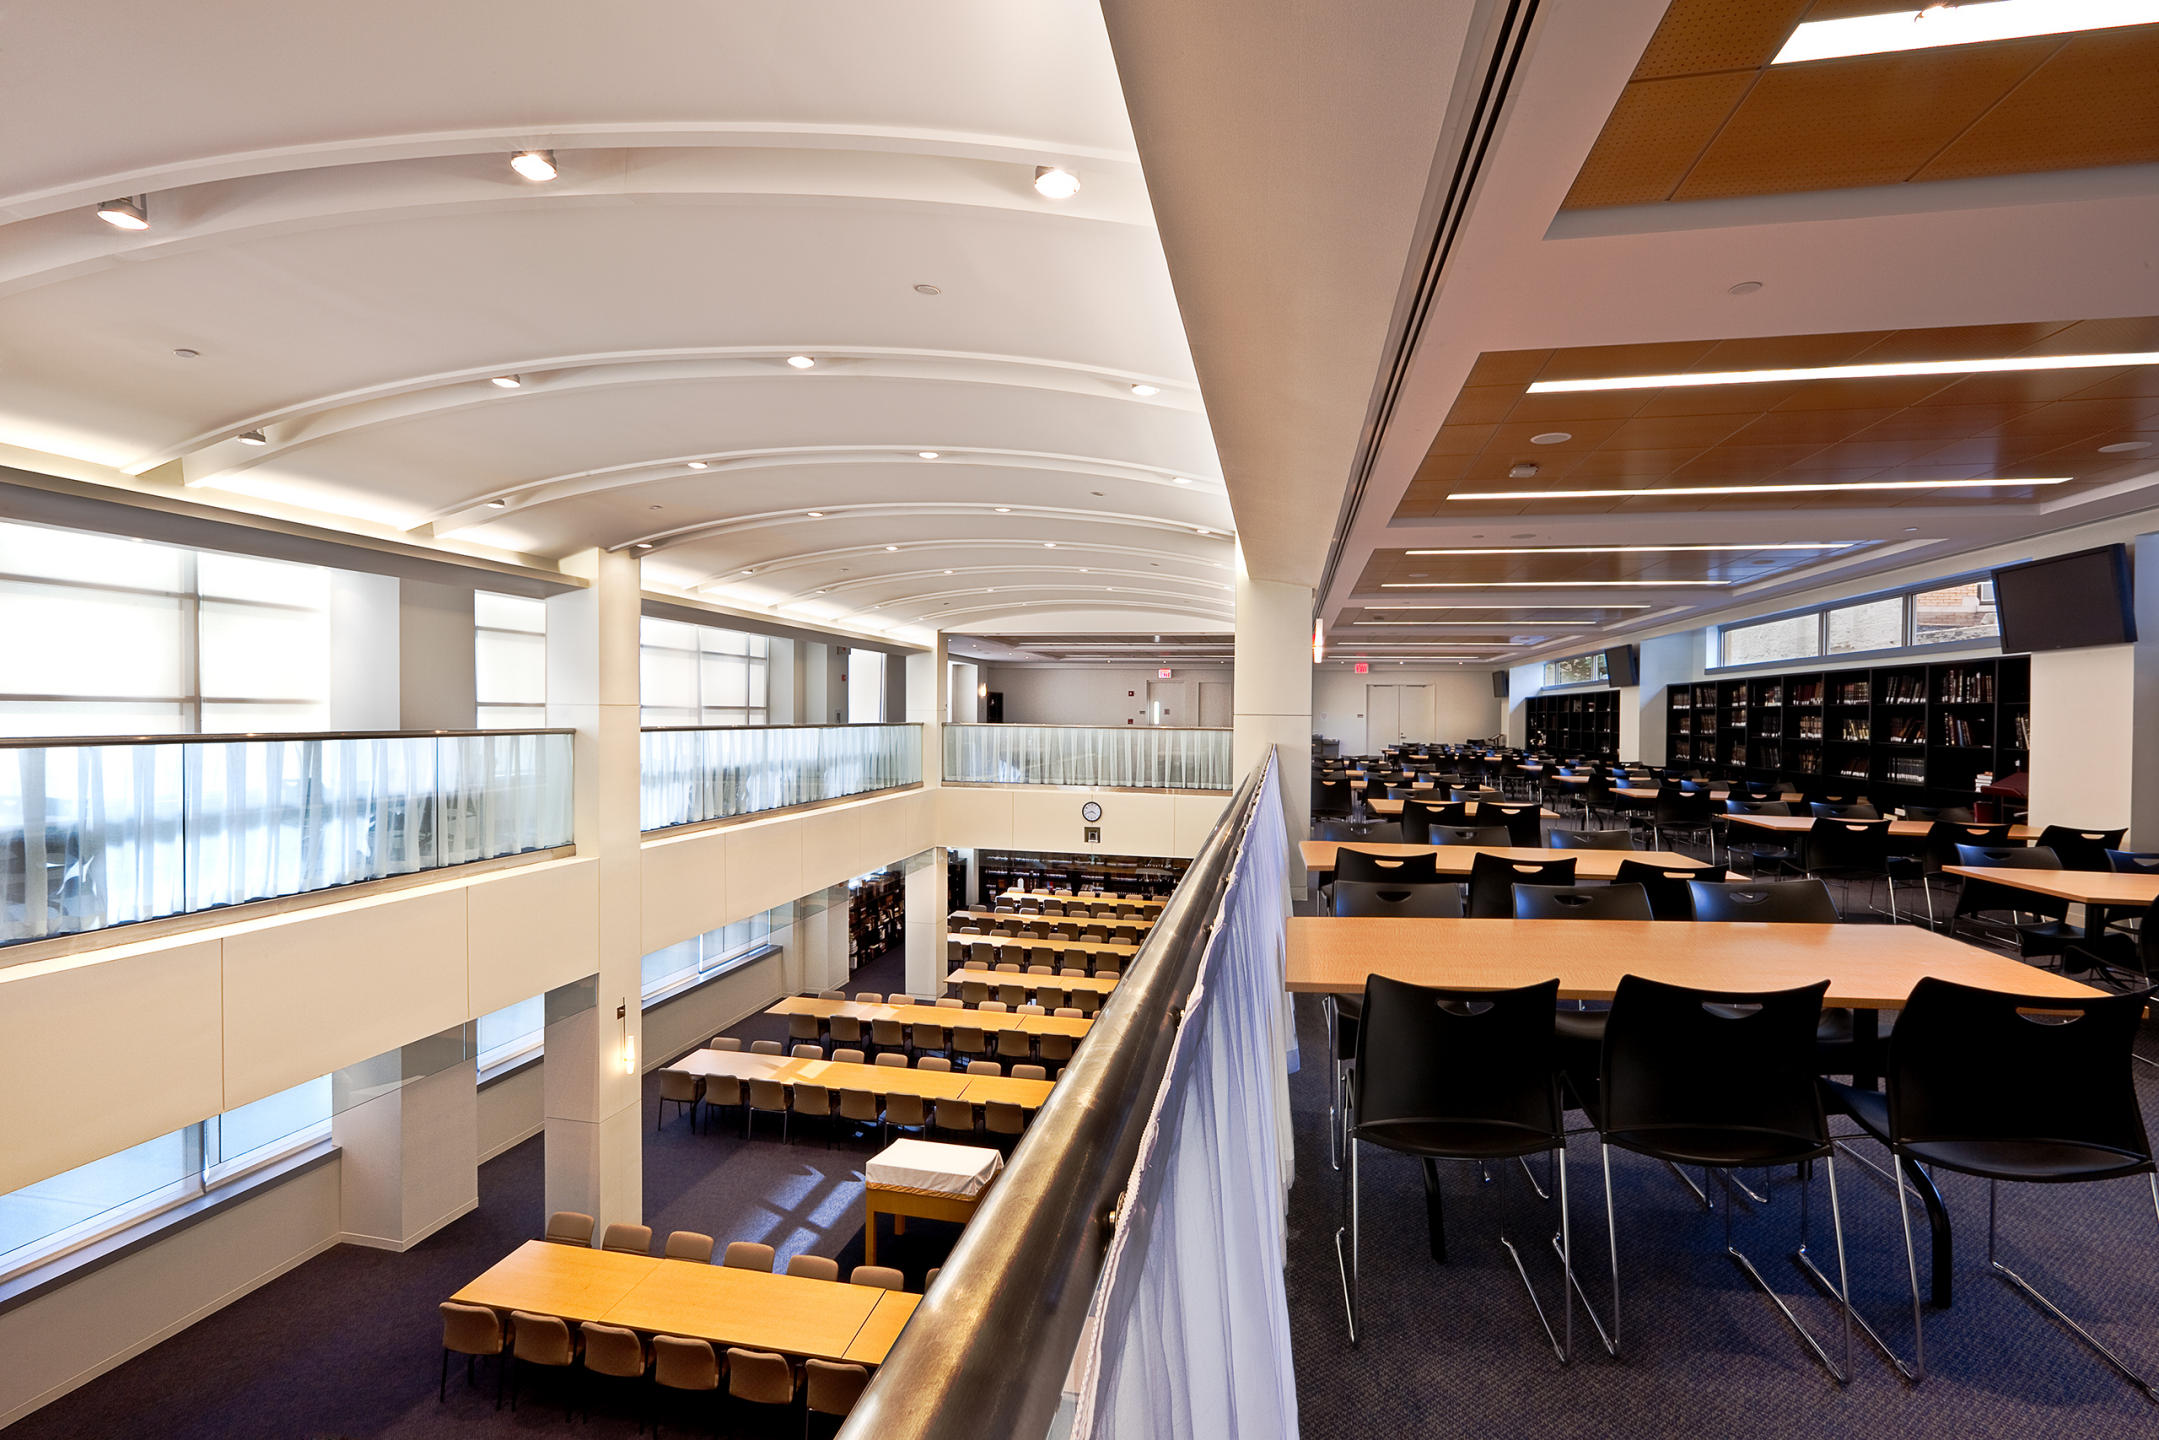 Yeshiva University library and study area as seen from the balcony : MBI Group NYC : New York NY Architectural Photographer | Interior and Exterior